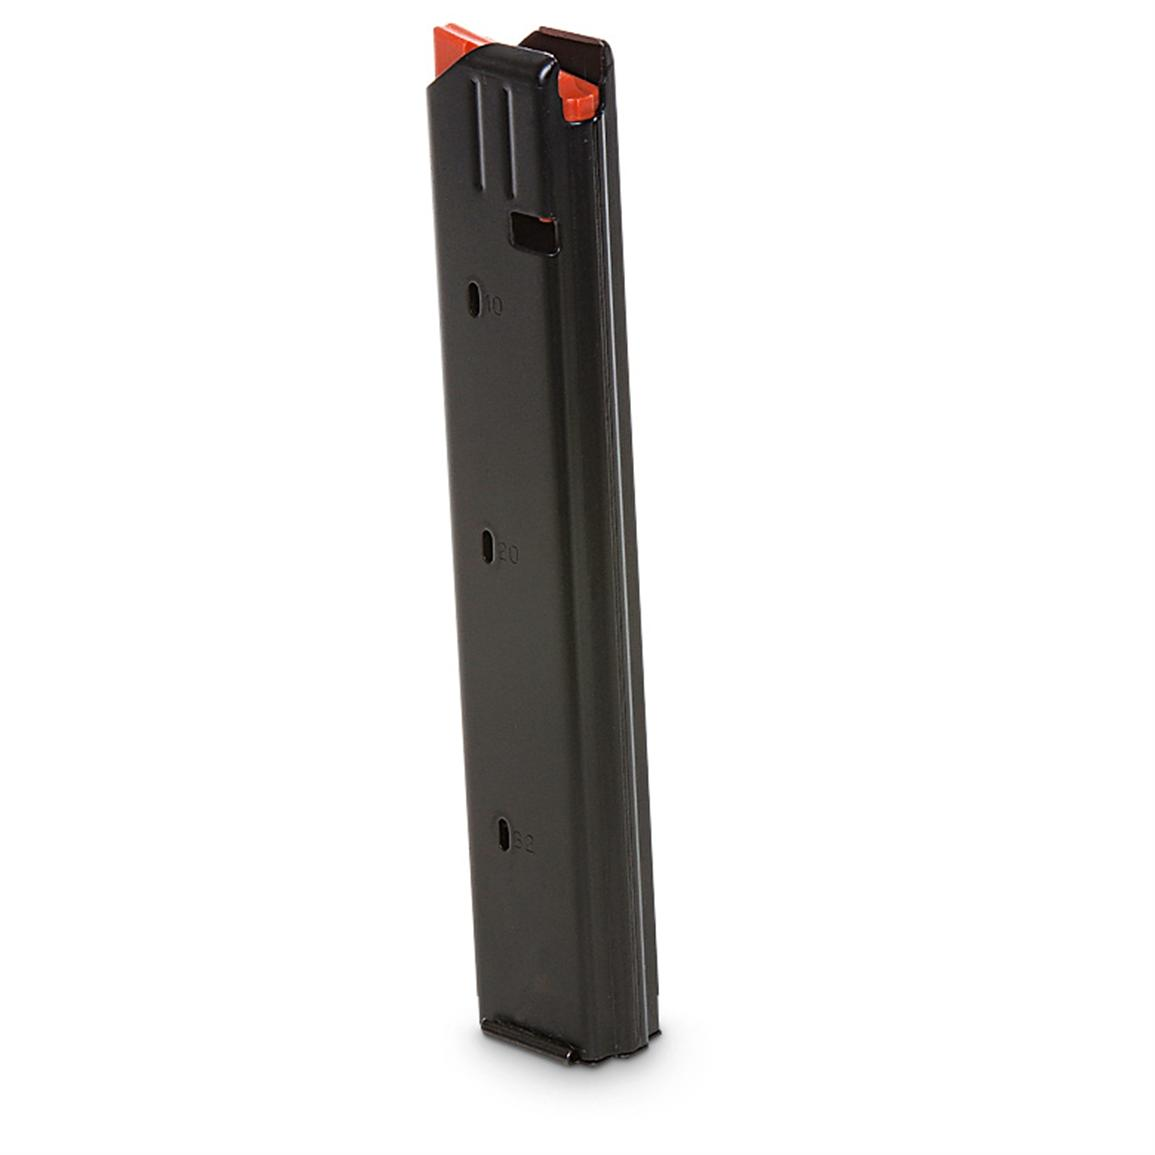 3-Pk. of CPD® 32-rd. 9mm Luger Mags